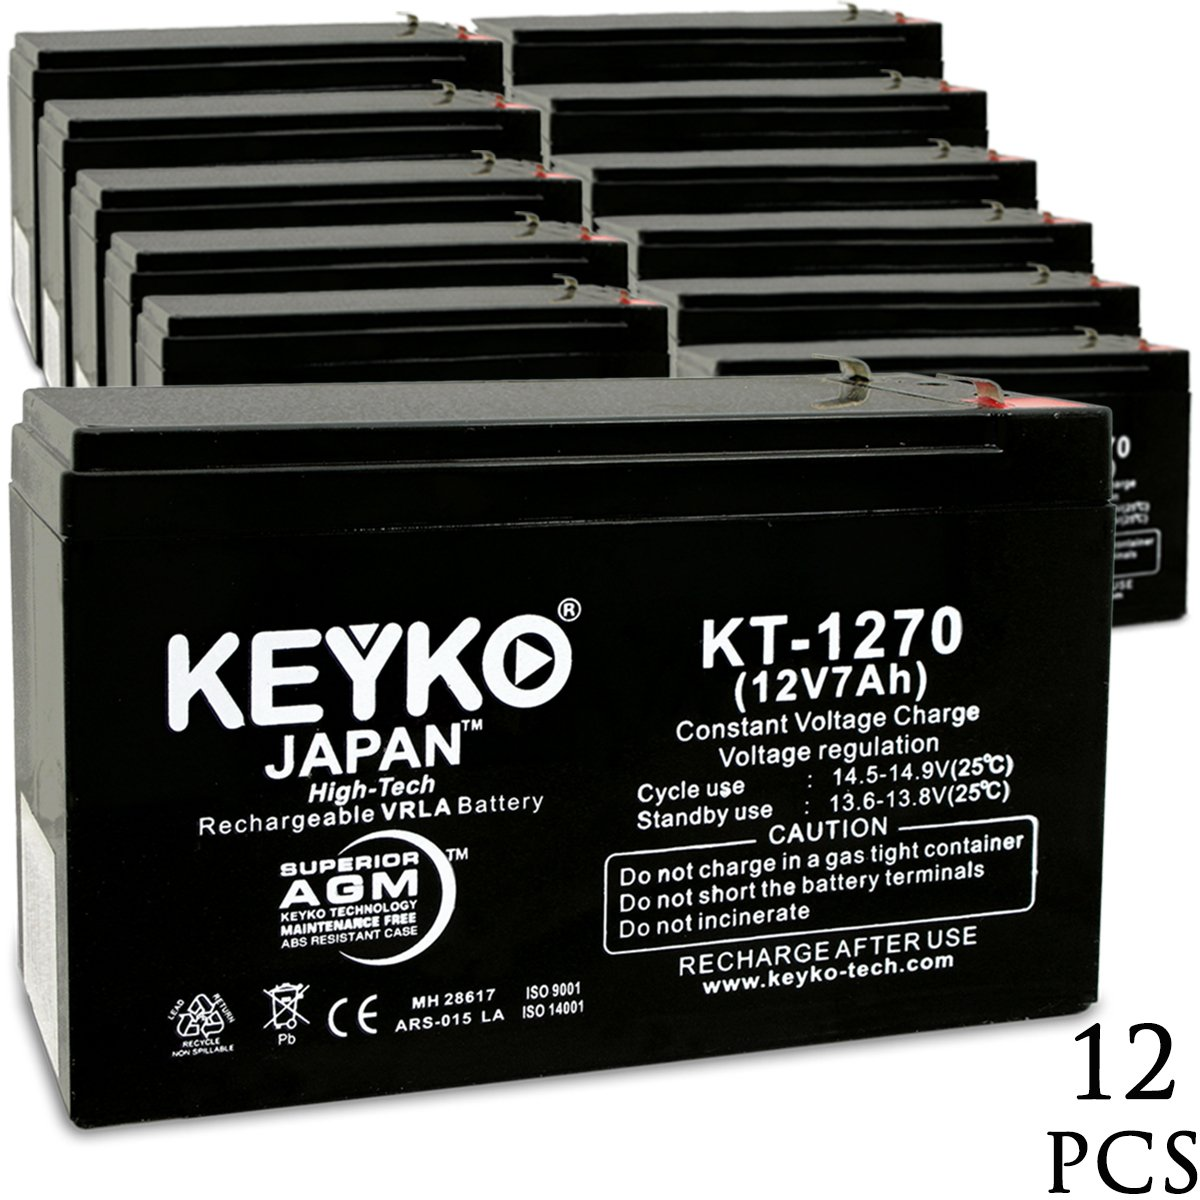 Deltec PRA 600 UPS 12V 7Ah SLA Sealed Lead Acid AGM Rechargeable Replacement Battery Genuine KEYKO (F1 Terminal W/F2 Adapter) - 12 Pack